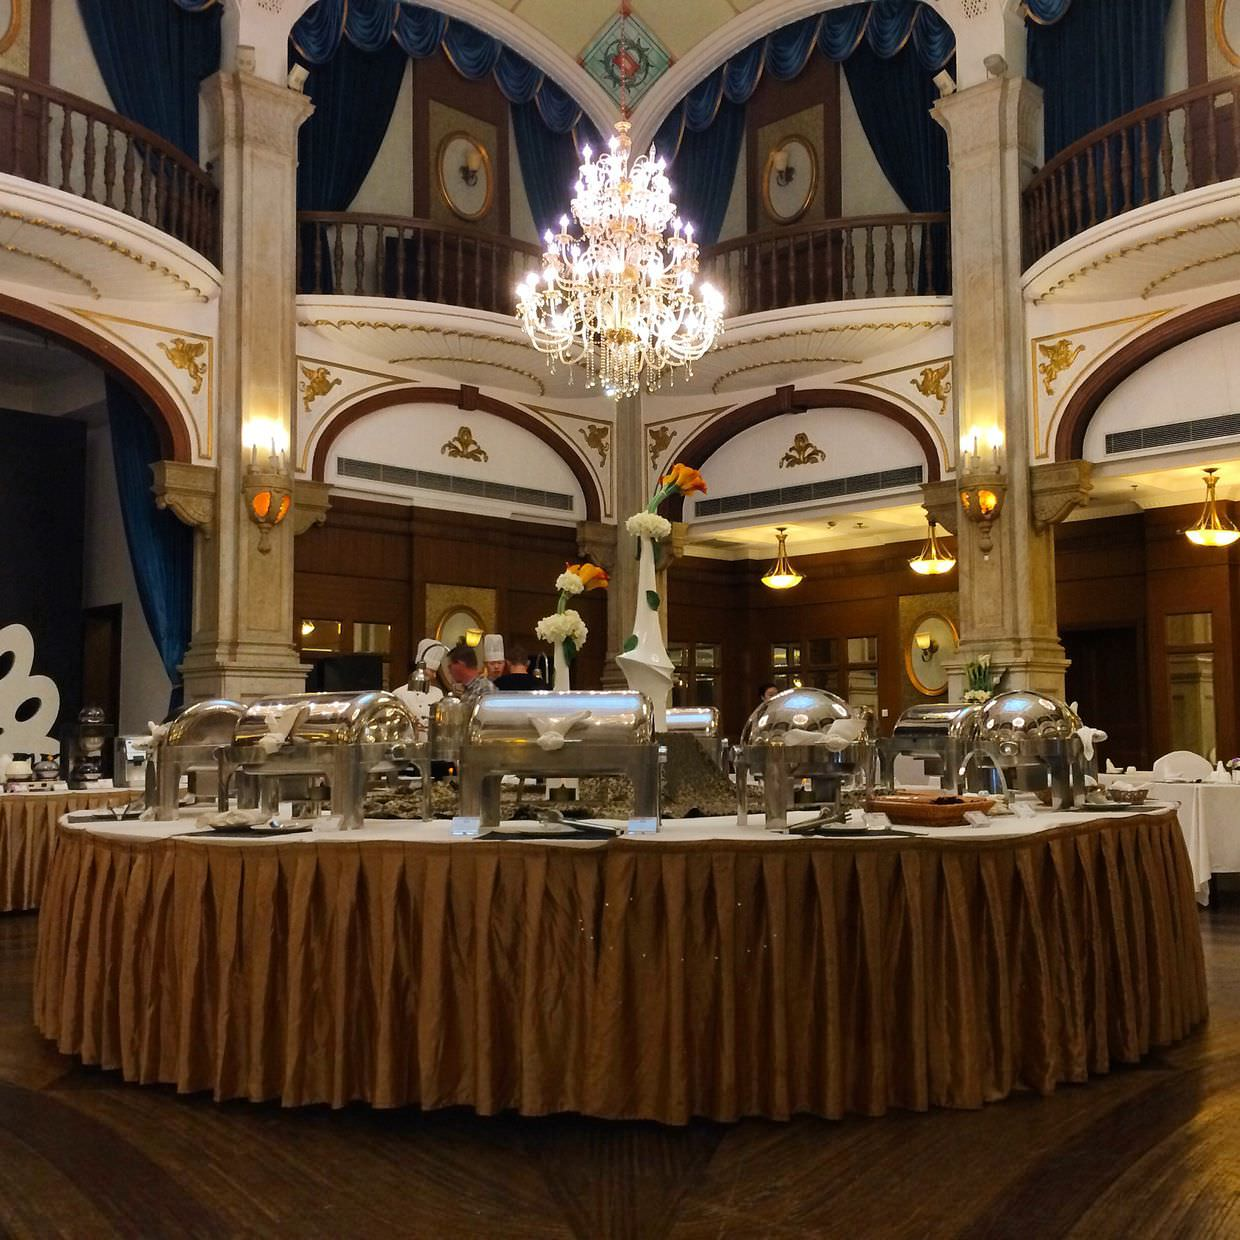 Breakfast in the Peacock ballroom